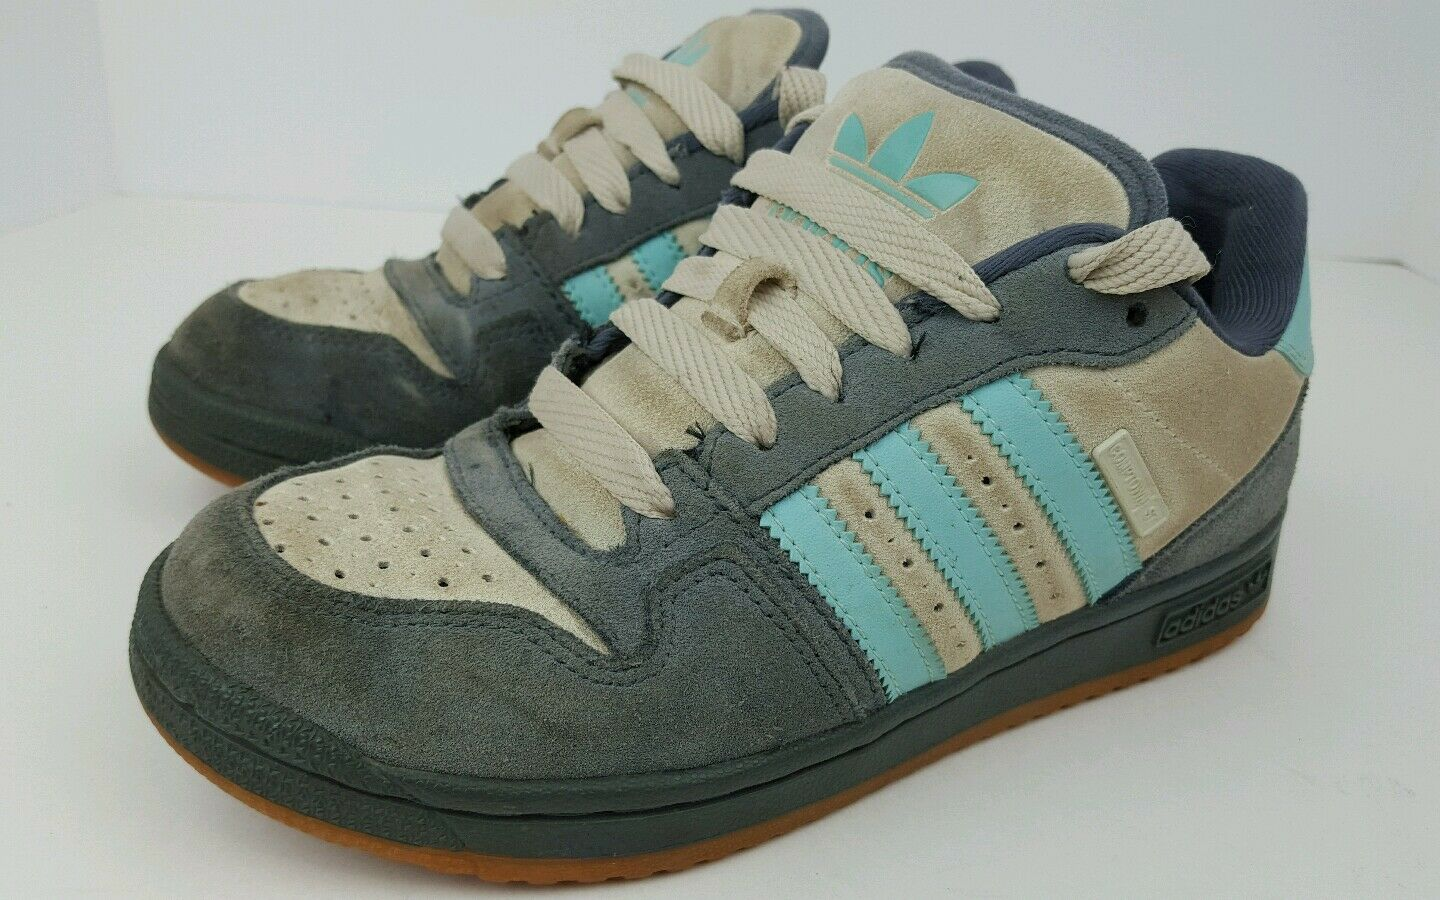 Adidas Womens Size 6.5 Comtown St Gray Blue Cream Suede Low Skater Shoes Hipster